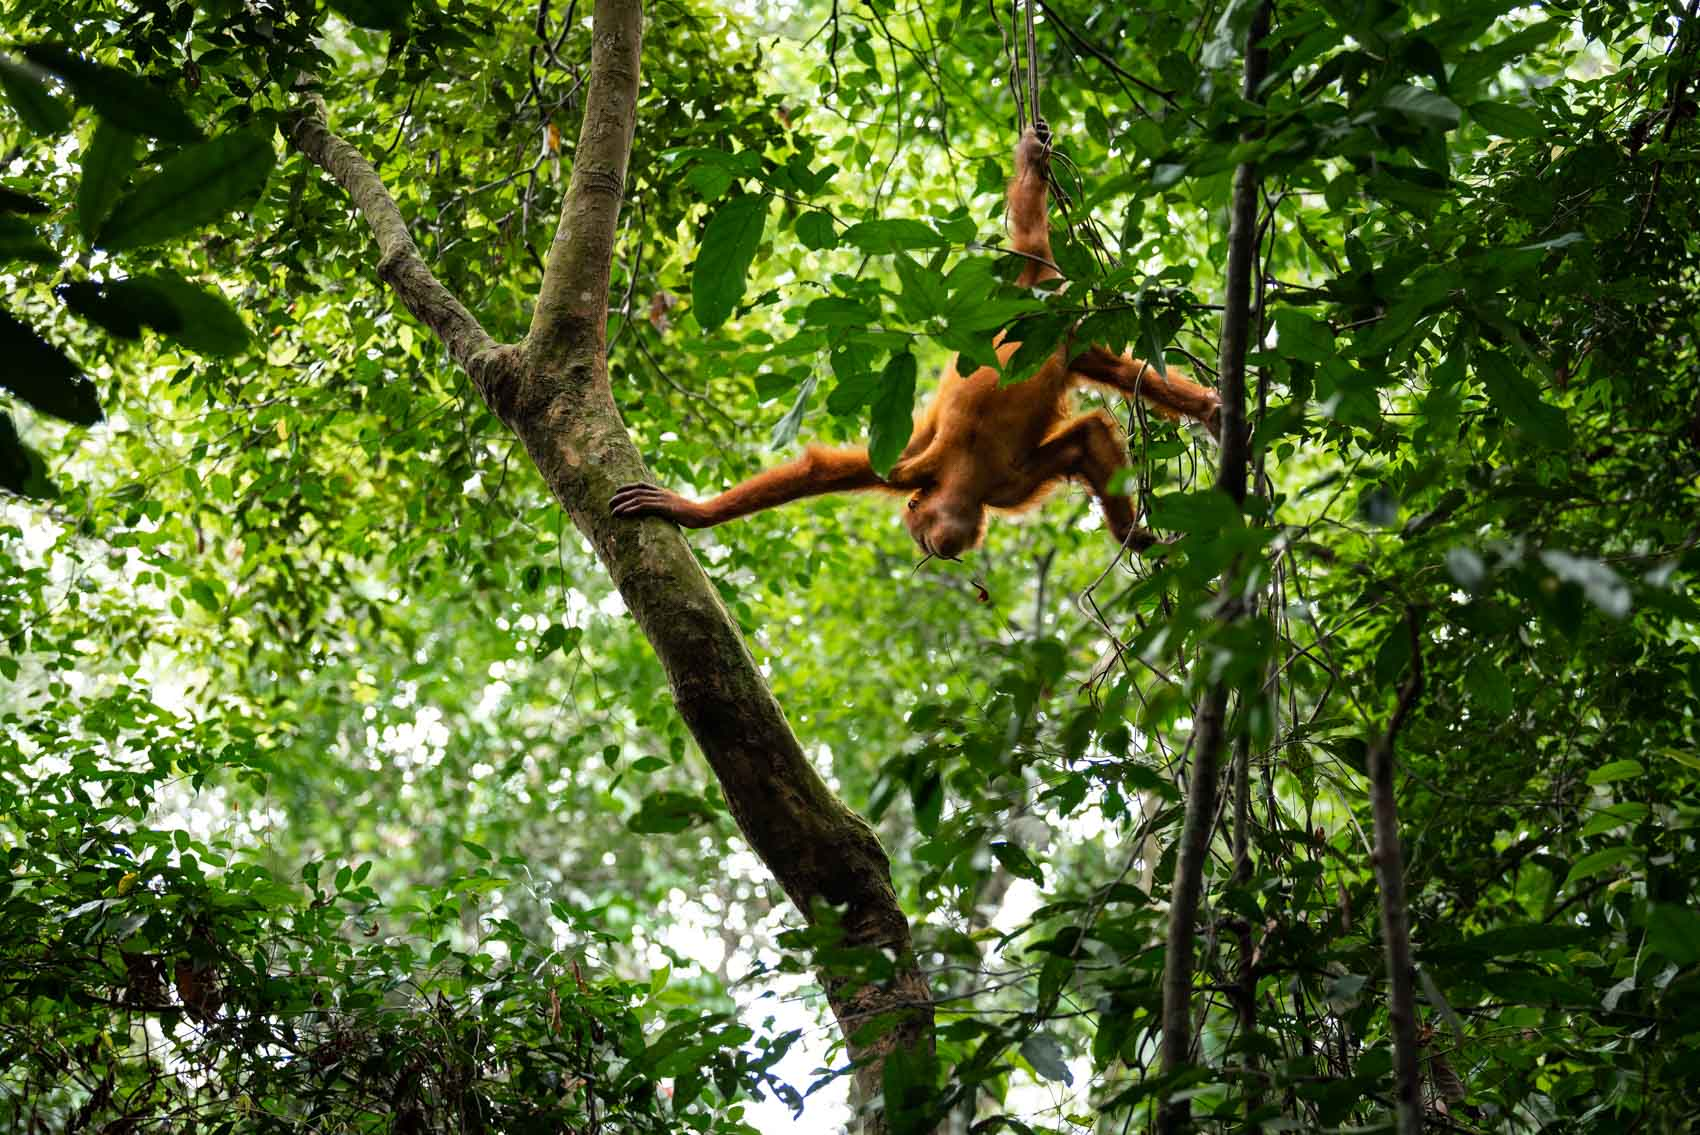 A baby orangutan hanging from branches in the rainforest in Sumatra Indonesia